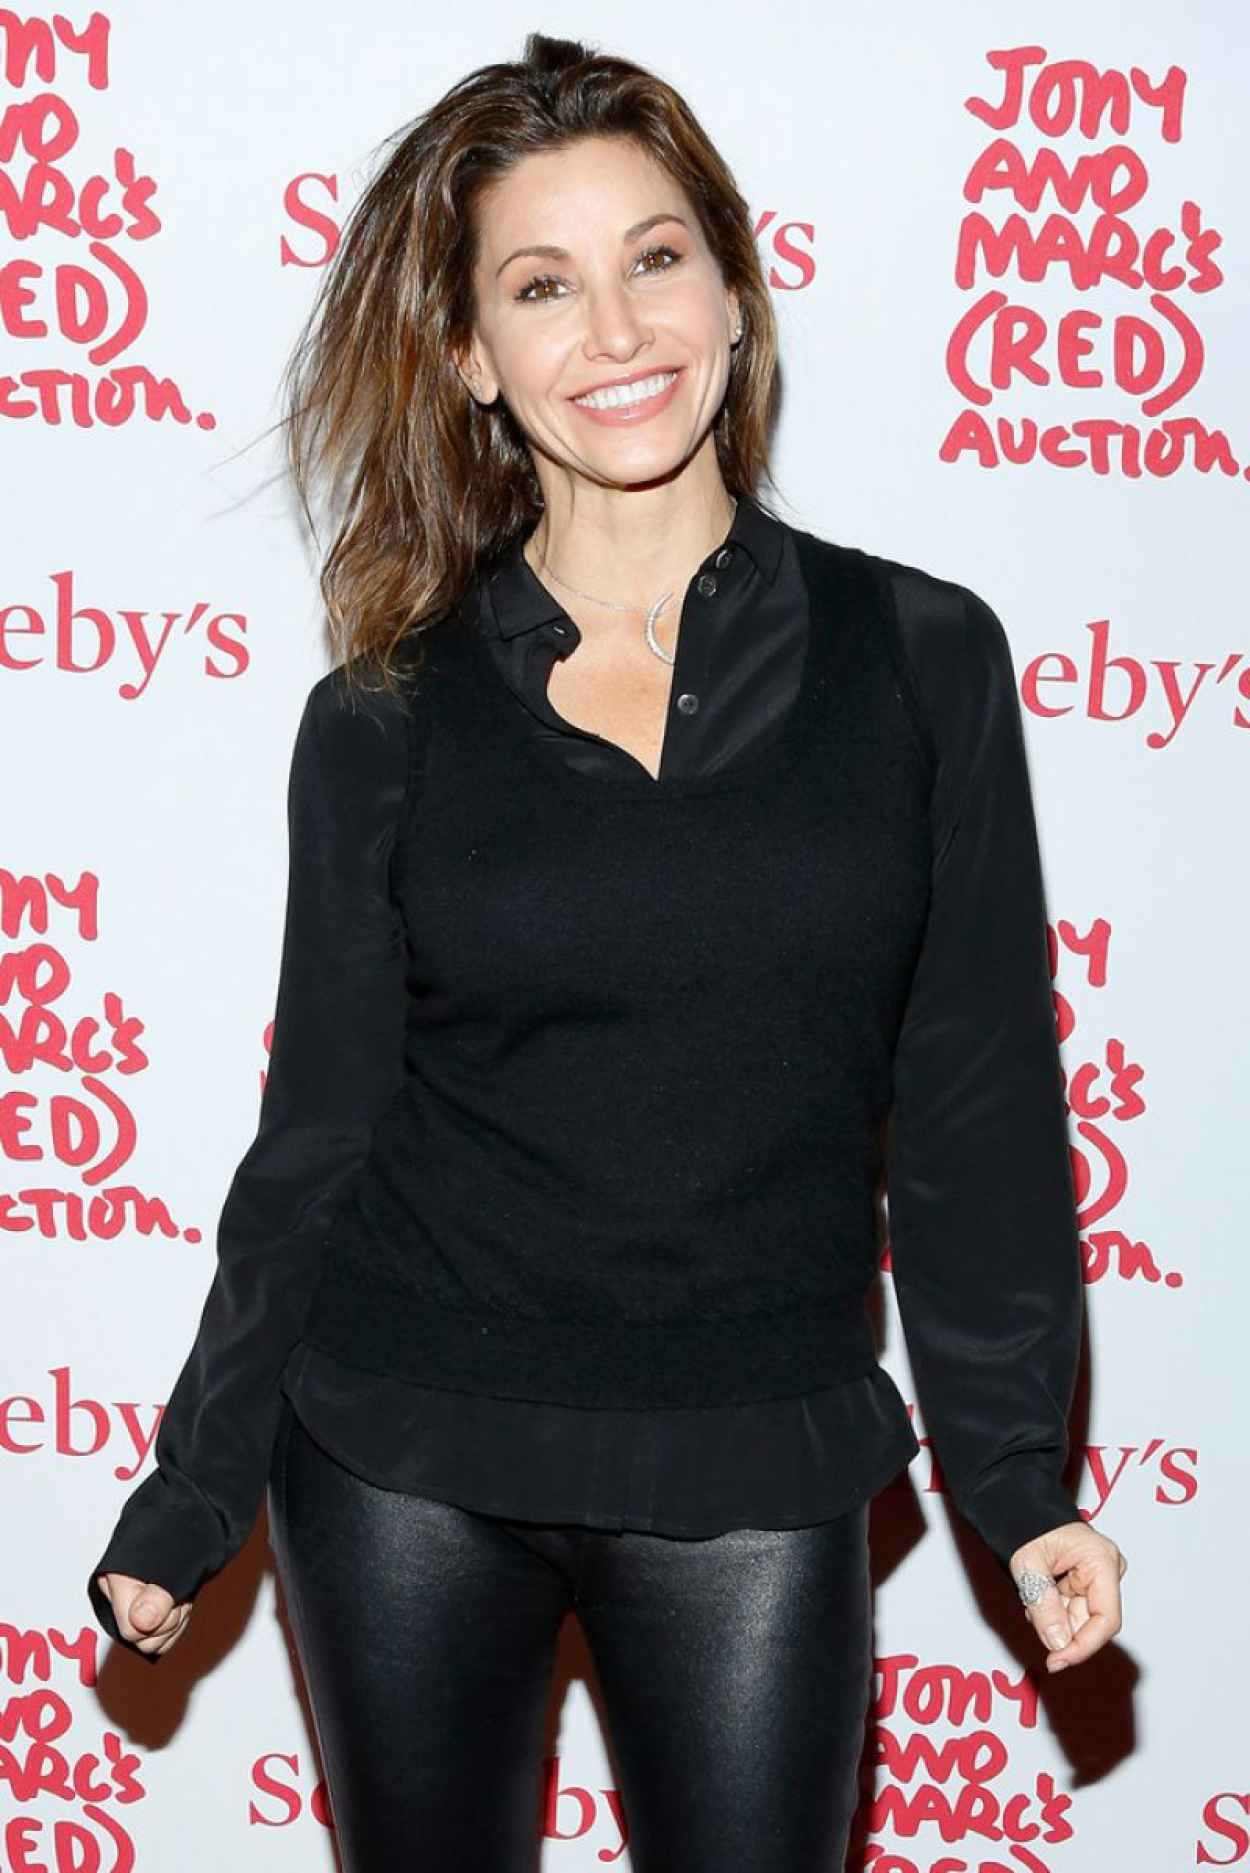 Gina Gershon at Jony & Marcs (RED) Auction in New York City-1